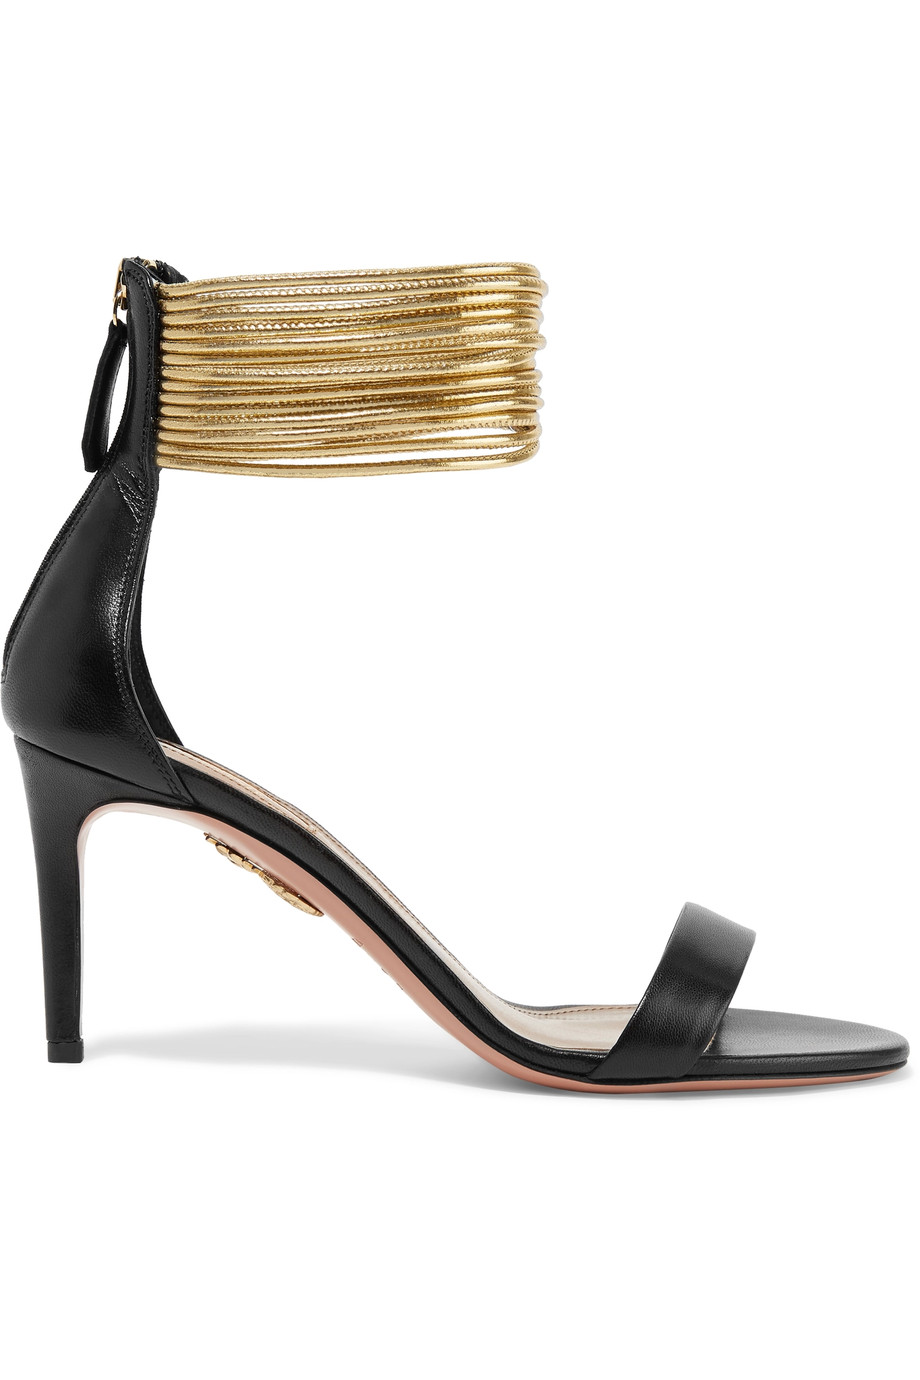 Aquazzura leather sandals.jpg